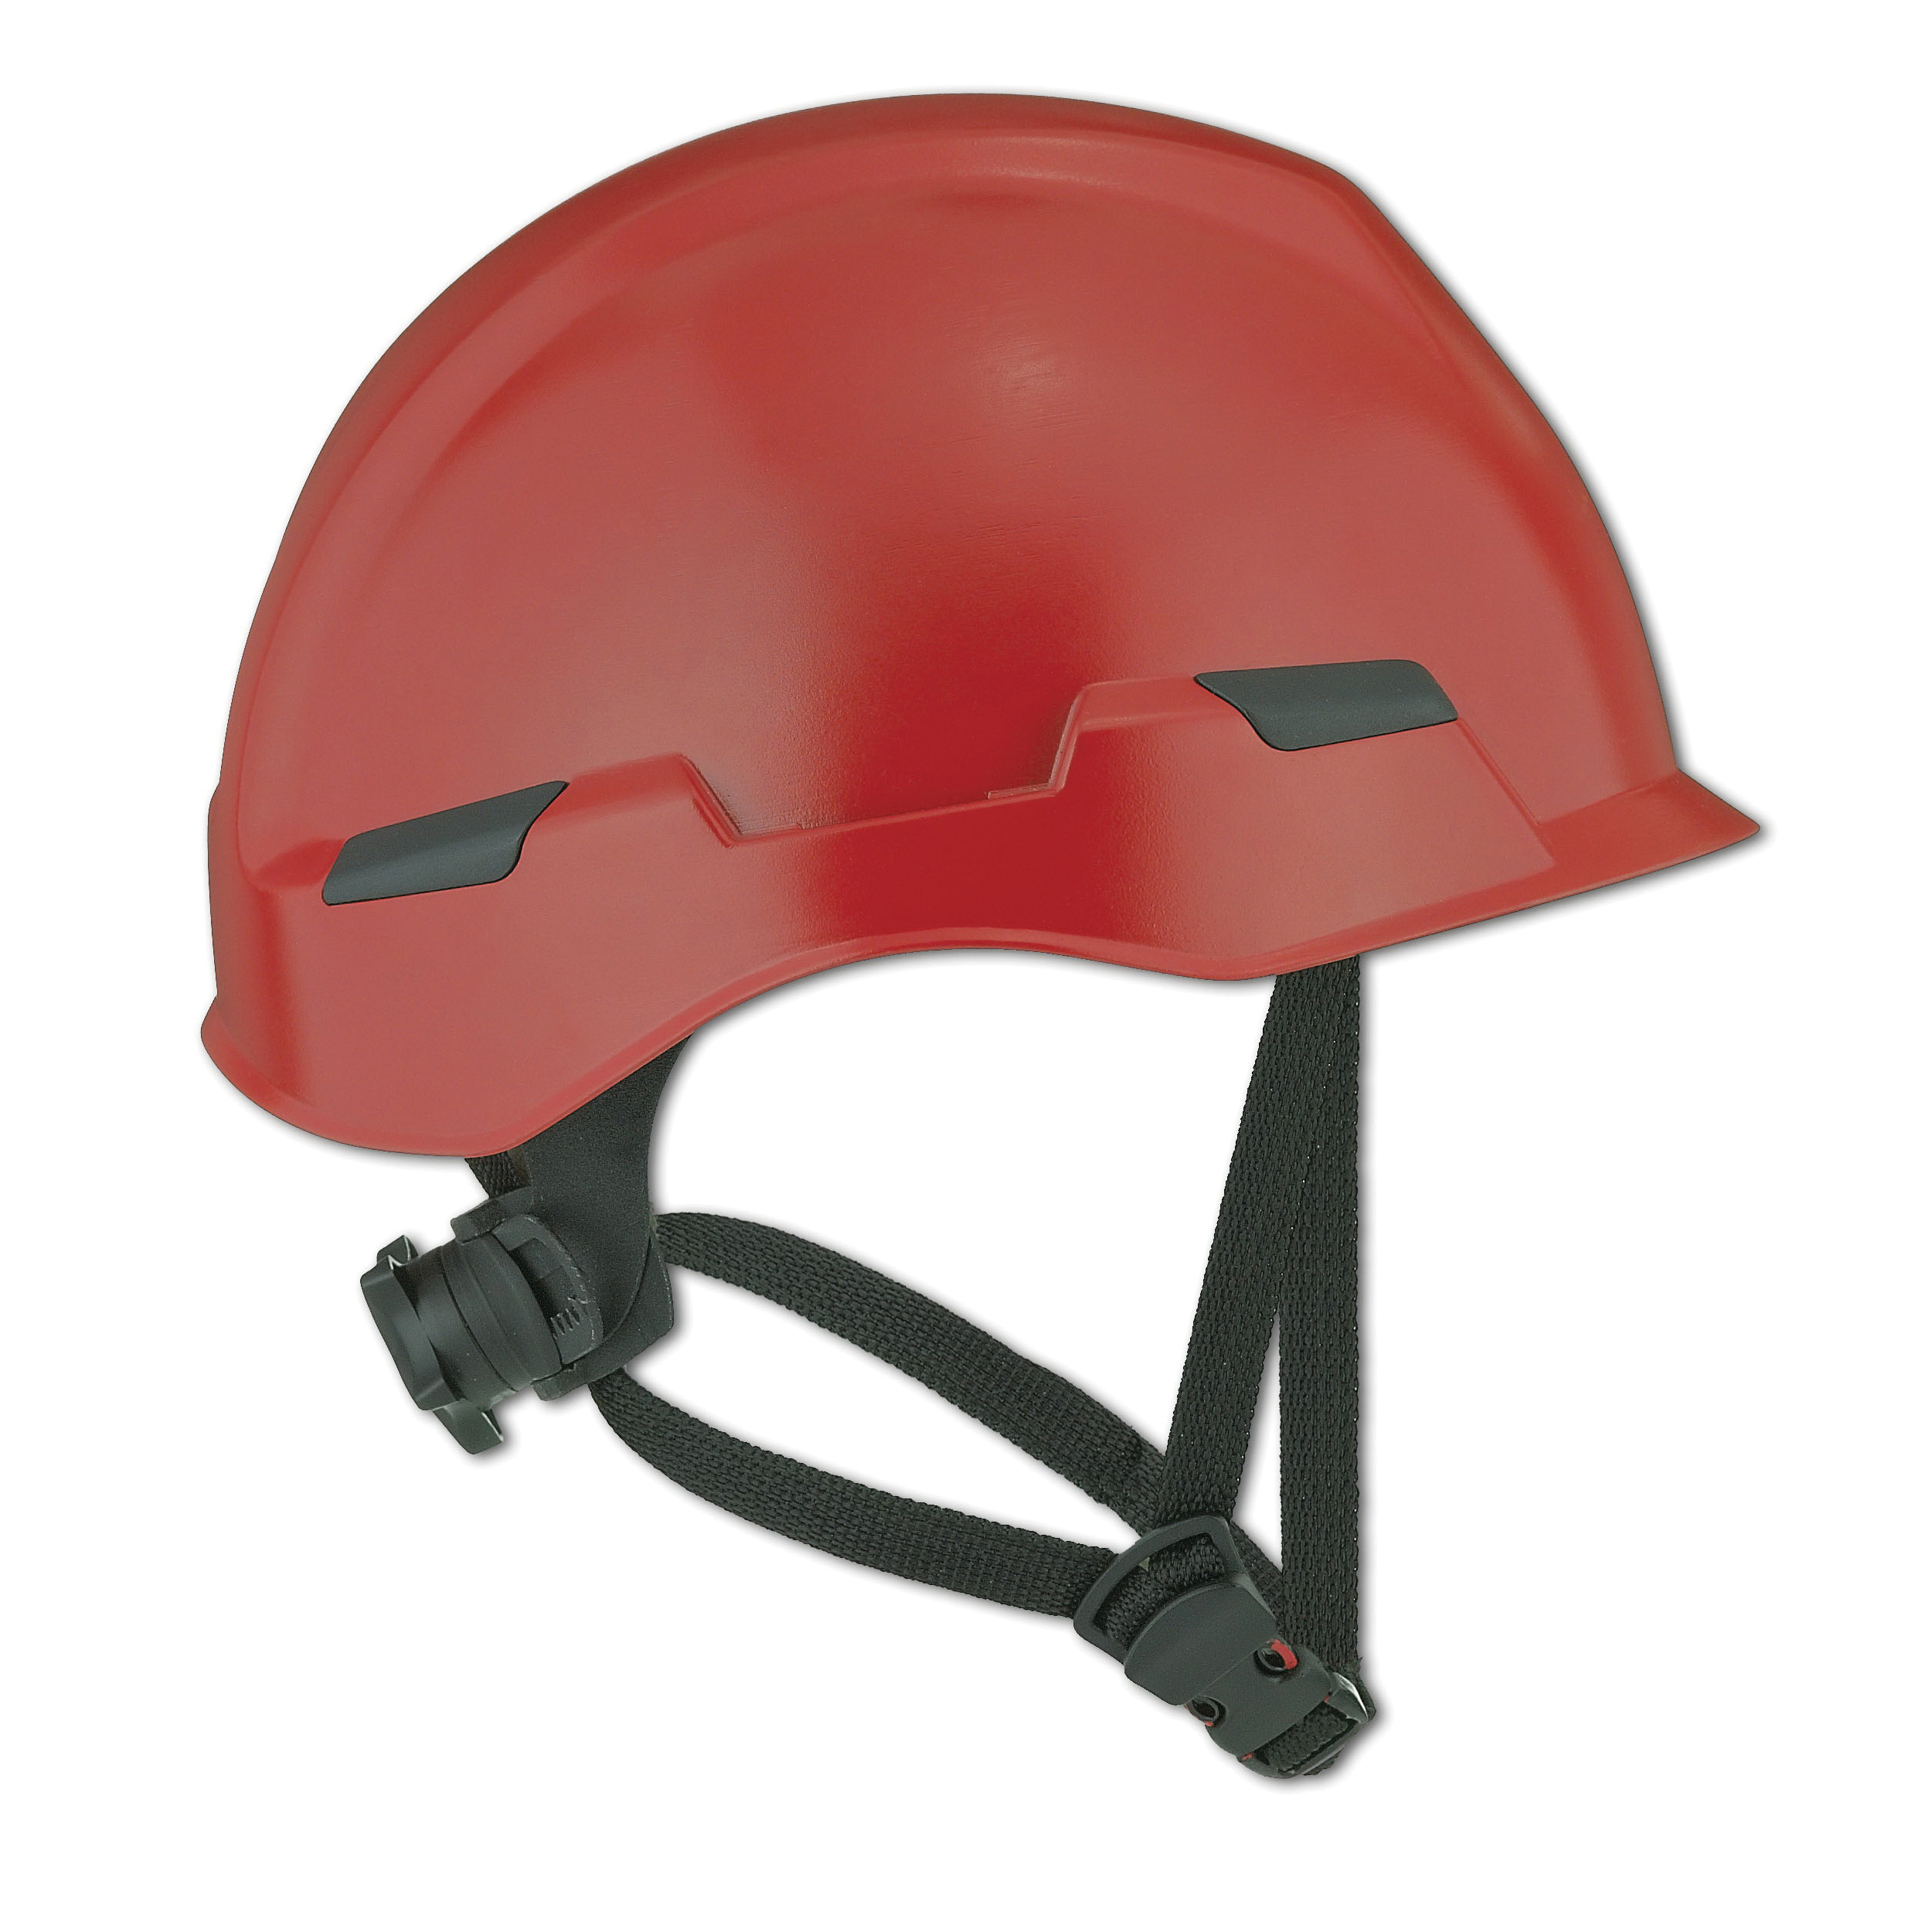 DYNAMIC HP142R15 Rocky HP142R Hard Hat, SZ 6-5/8 Fits Mini Hat, SZ 8 Fits Max Hat, Polycarbonate/ABS, 4-Point Nylon Suspension, ANSI Electrical Class Rating: Class E, ANSI Impact Rating: Type II, Sure-Lock II Ratchet Adjustment